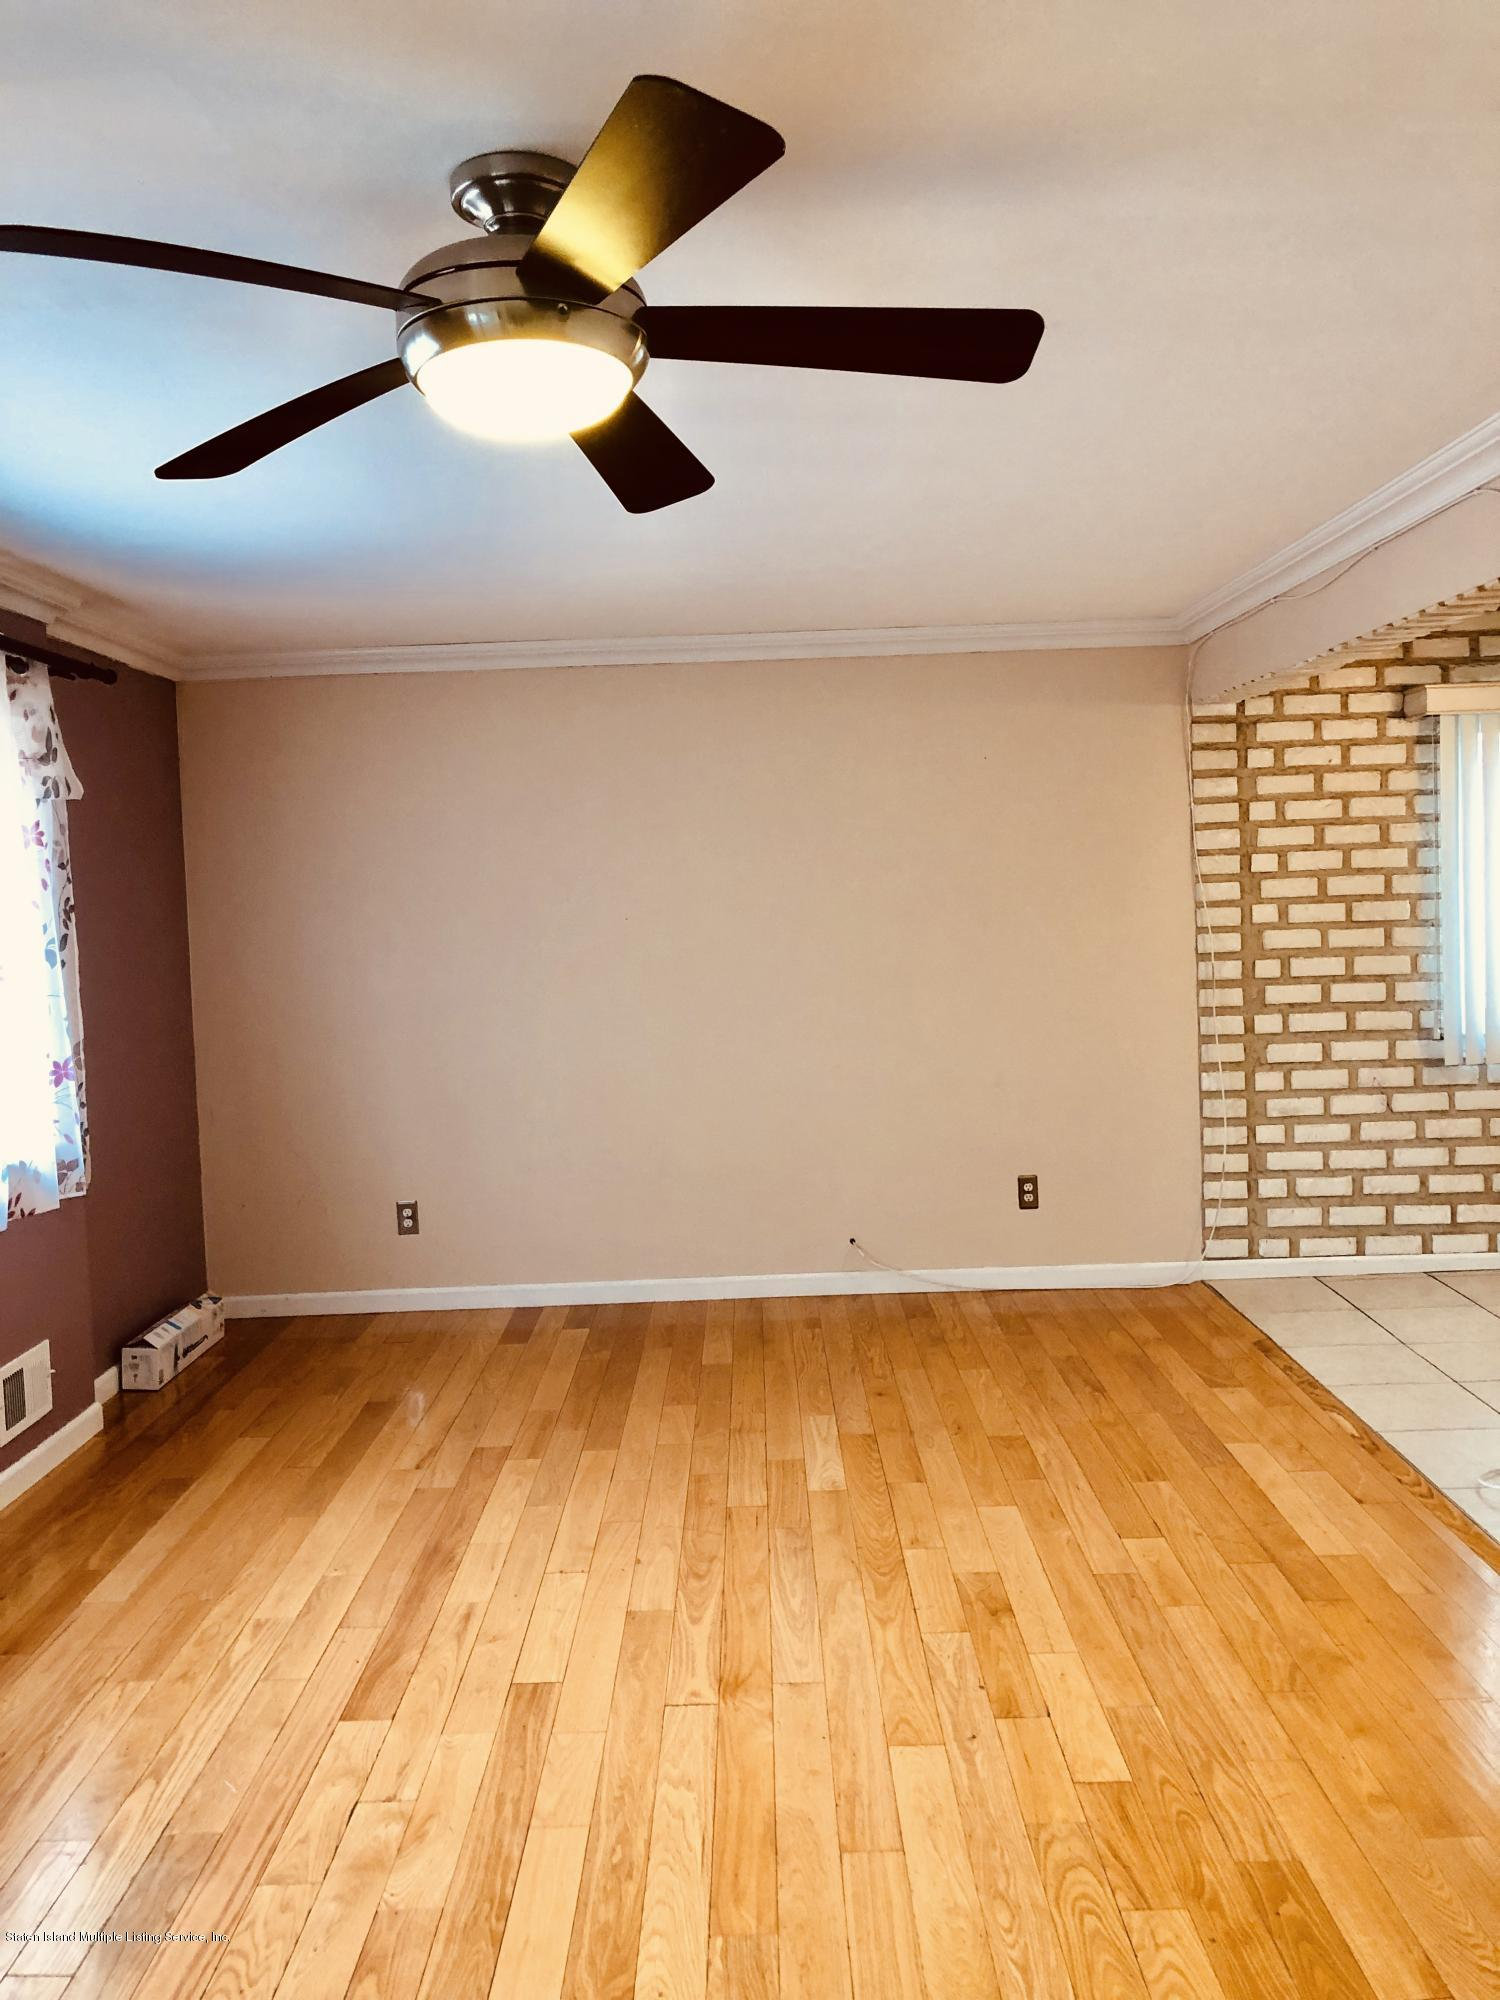 513 Willow Road,Staten Island,New York,10314,United States,3 Bedrooms Bedrooms,8 Rooms Rooms,2 BathroomsBathrooms,Res-Rental,Willow,1129440